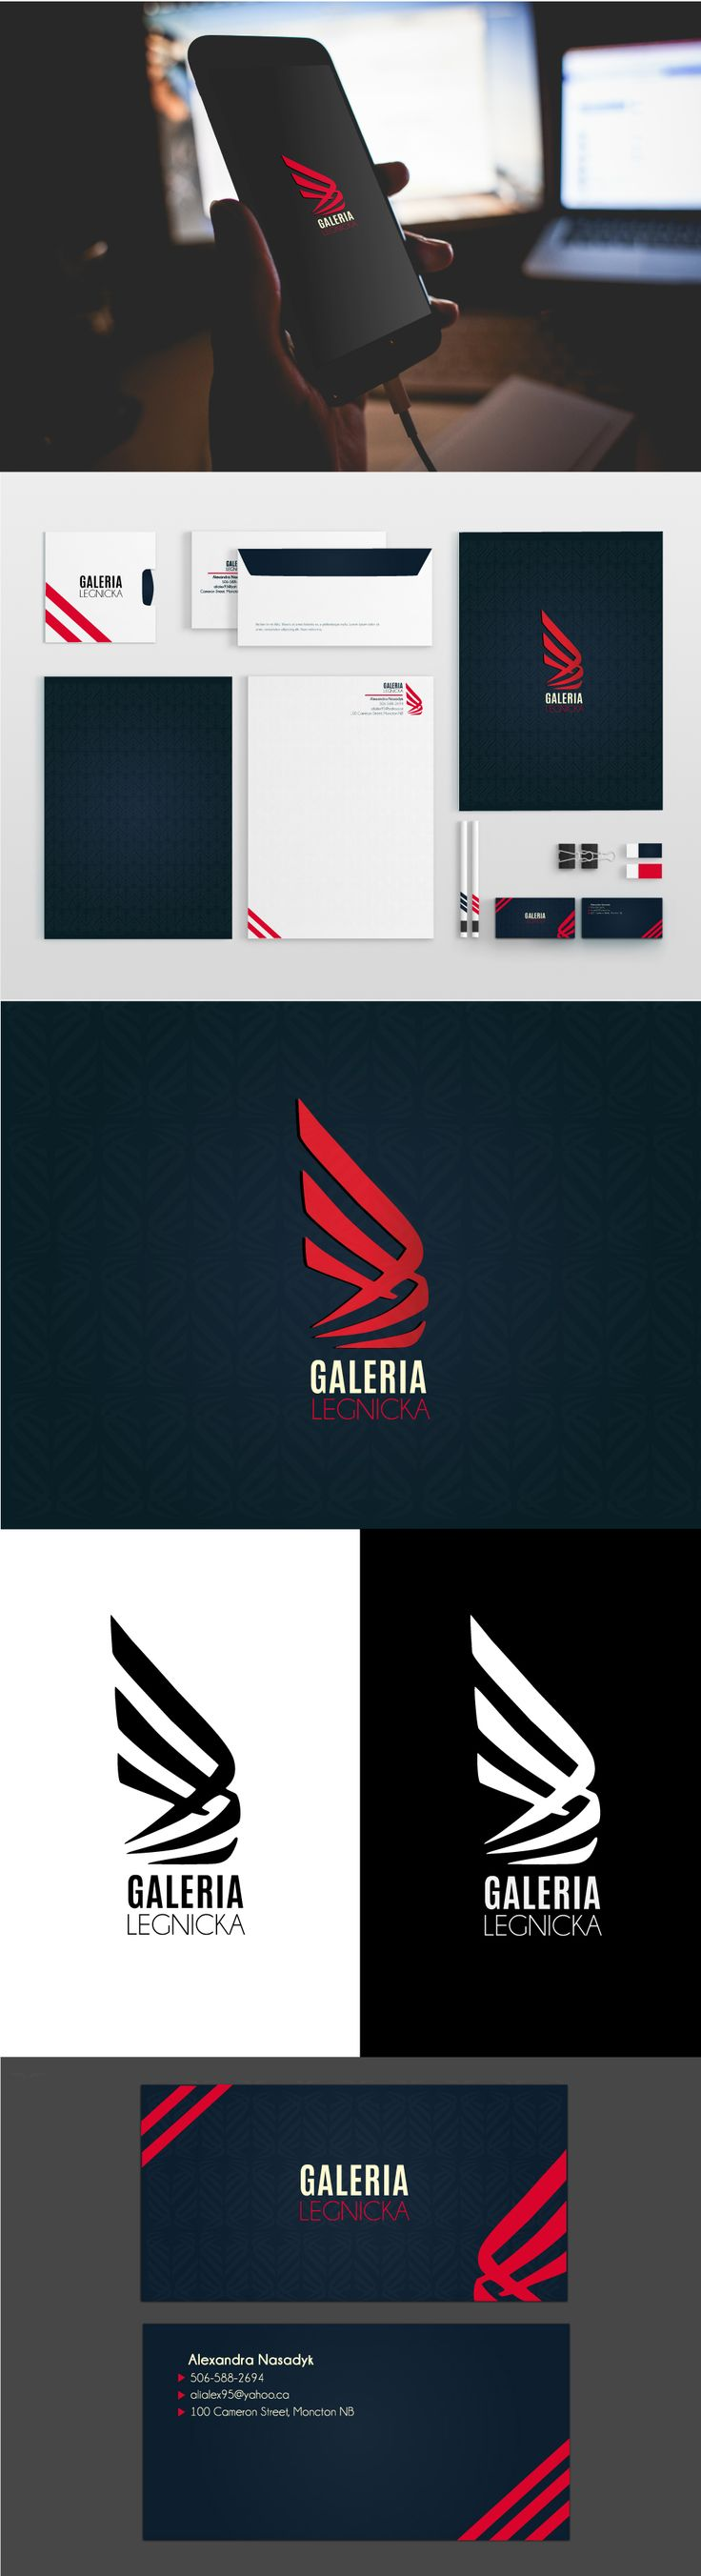 Branding practice. We took a logo from online, enhanced it, then created a branding scheme for it